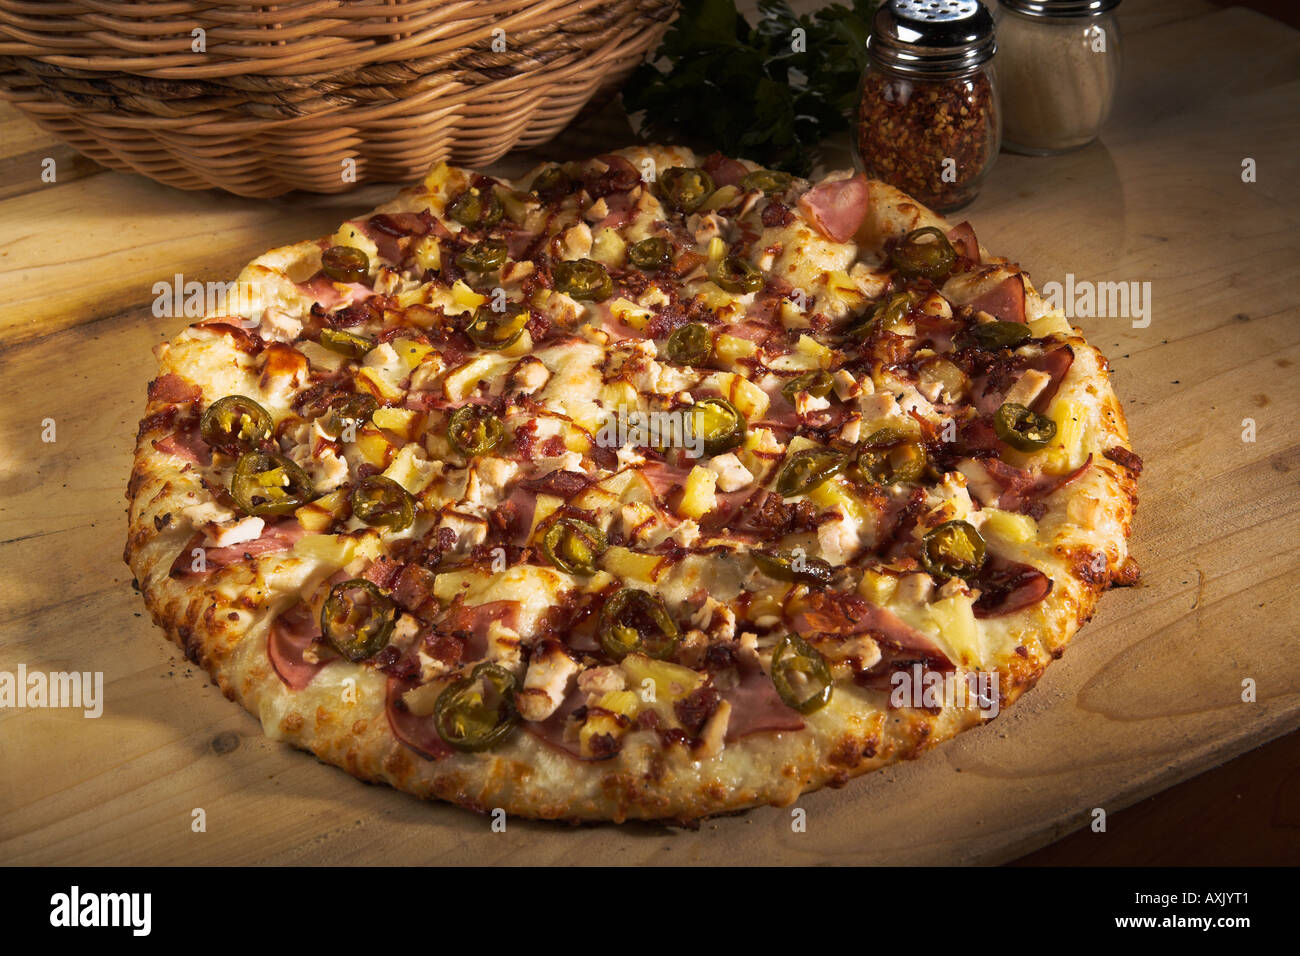 baked pepper vegetable meat pizza with cheese sauce bred crust brown on wood cutting board next to basket tomatoes - Stock Image